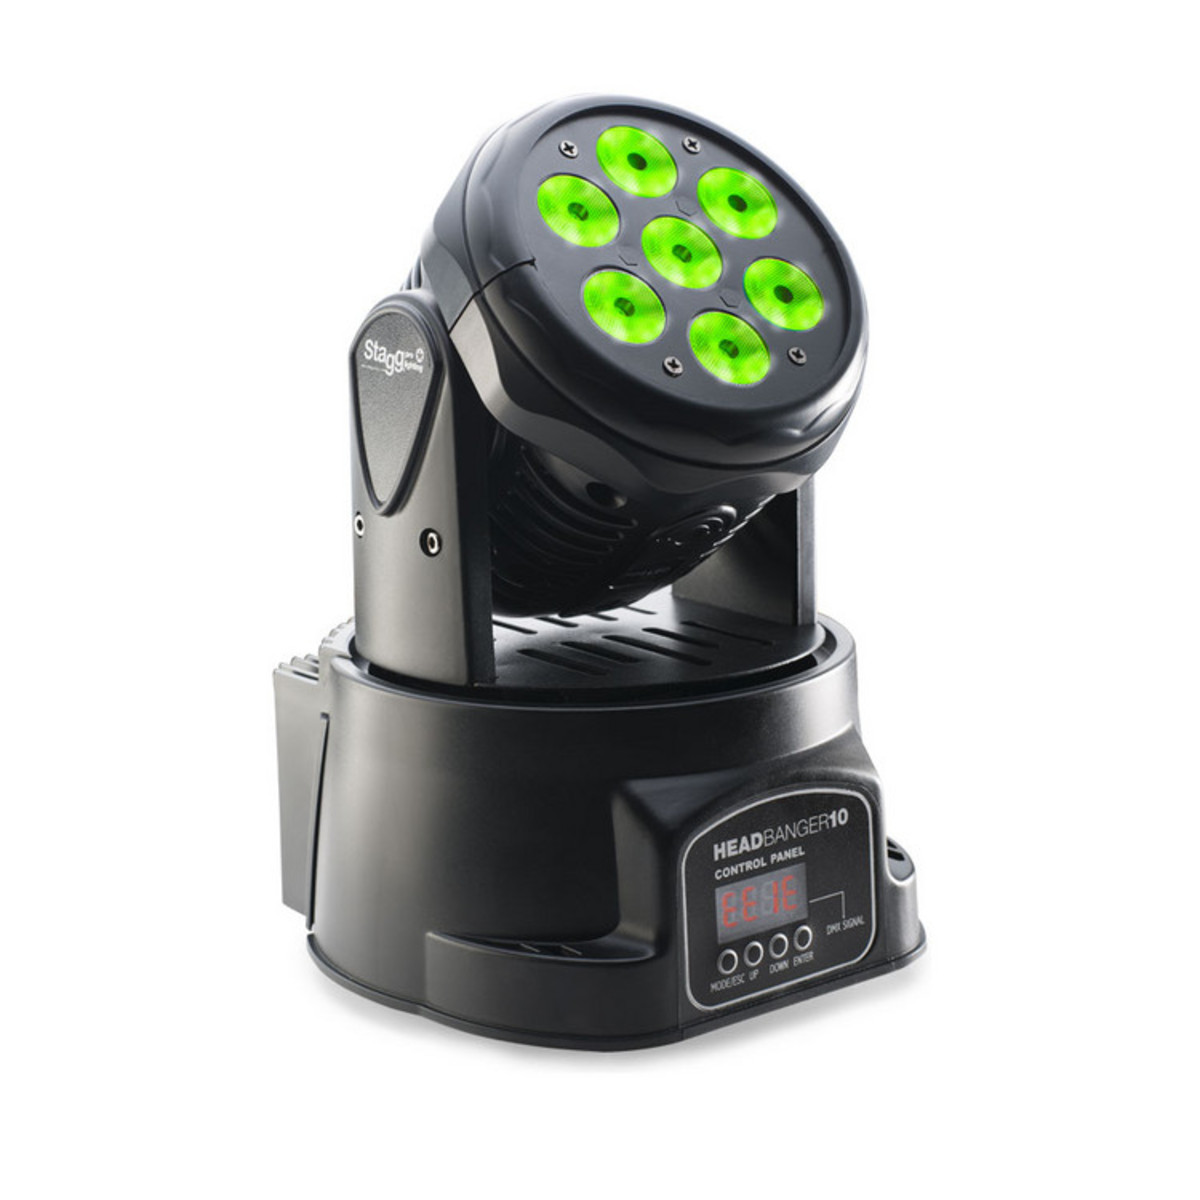 stagg led headbanger moving head light with 7 x 10w rgbw 4in1 led